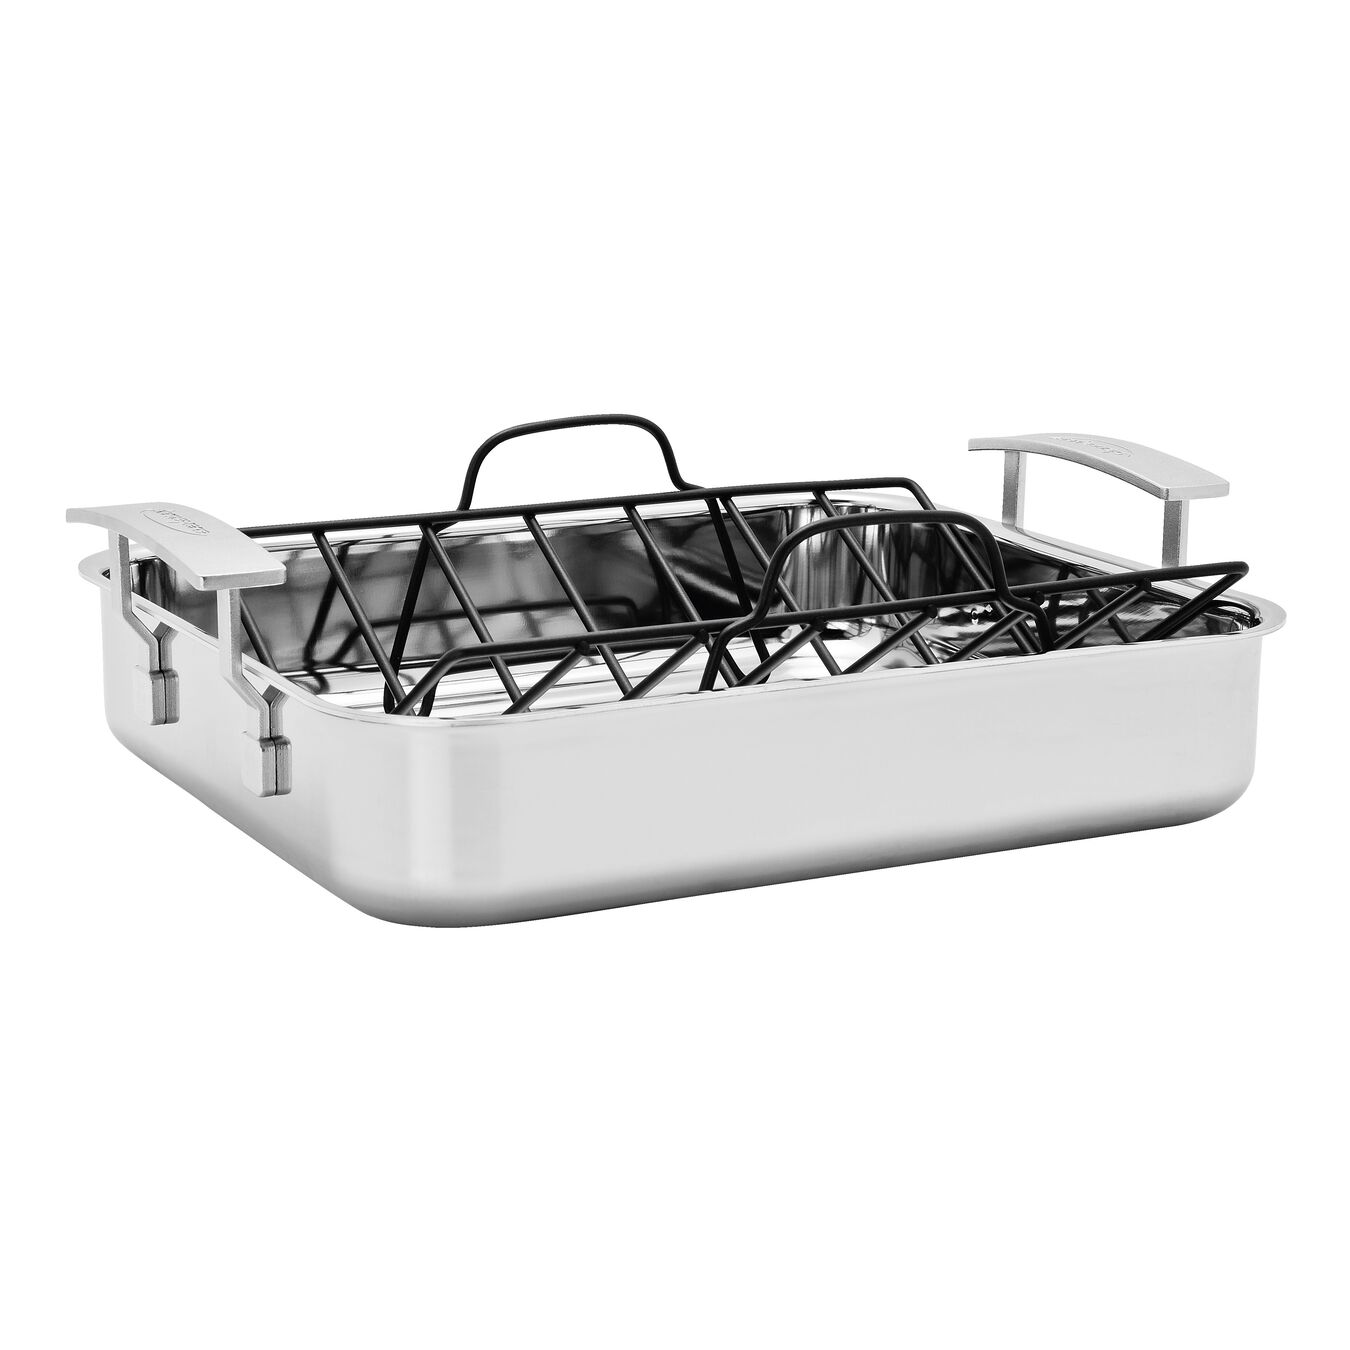 Roasting pan with grid,,large 1